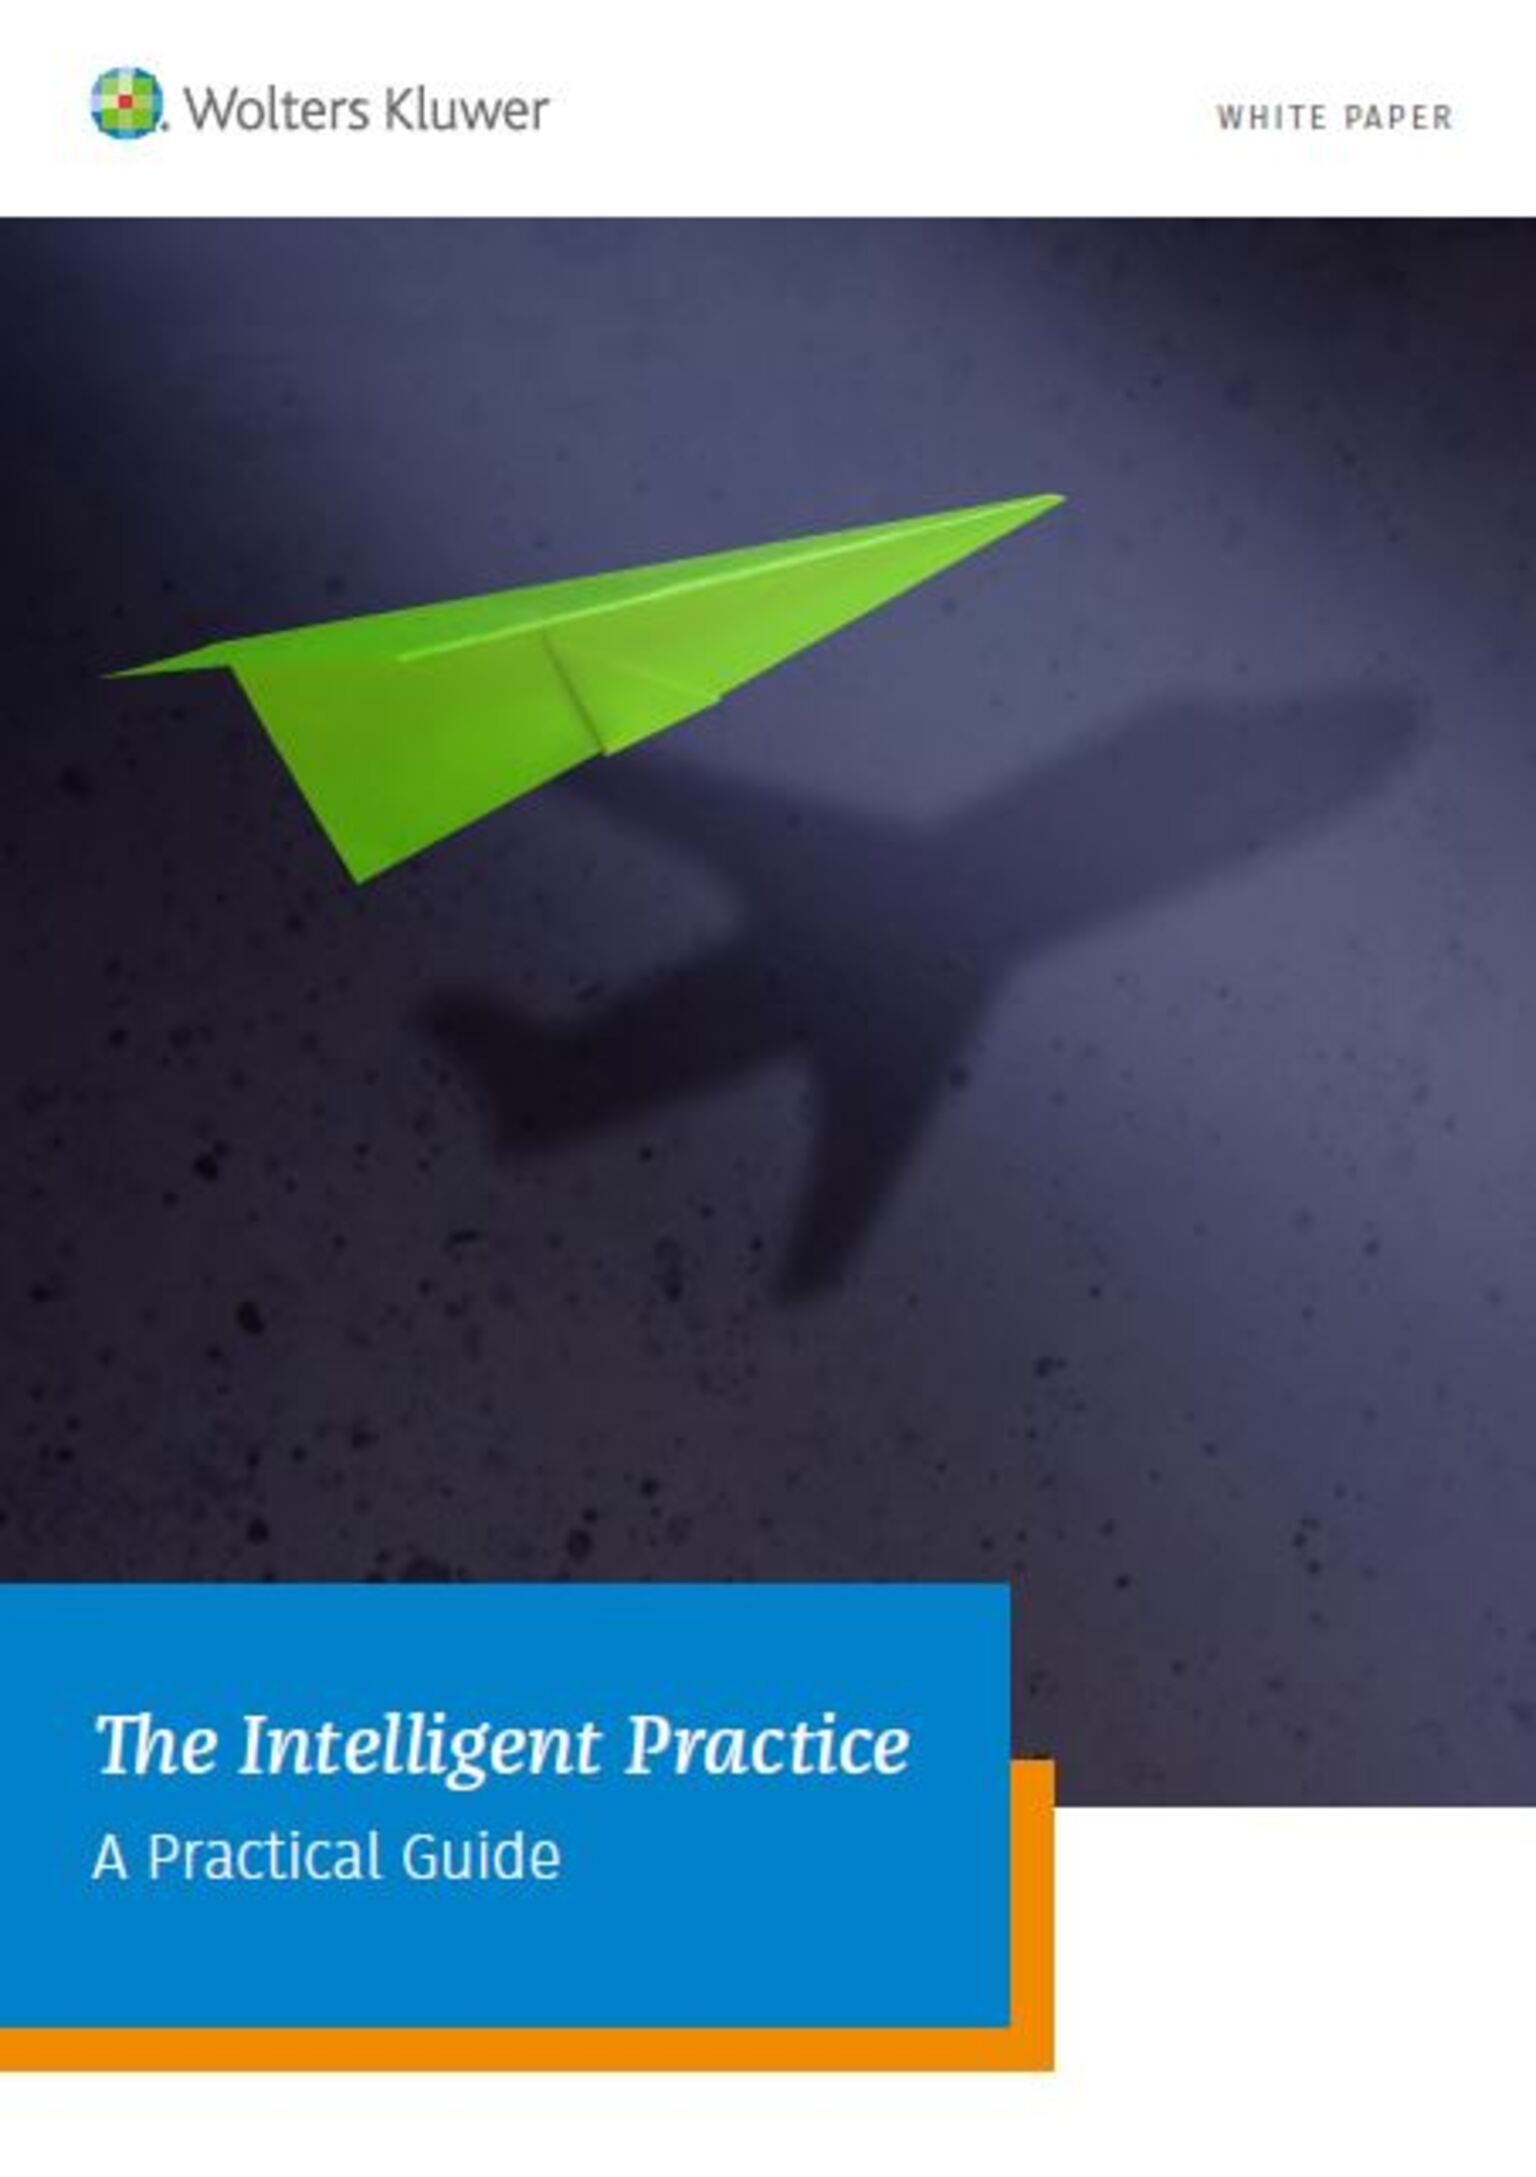 The-Intelligent-Practice-A-Practical-Guide